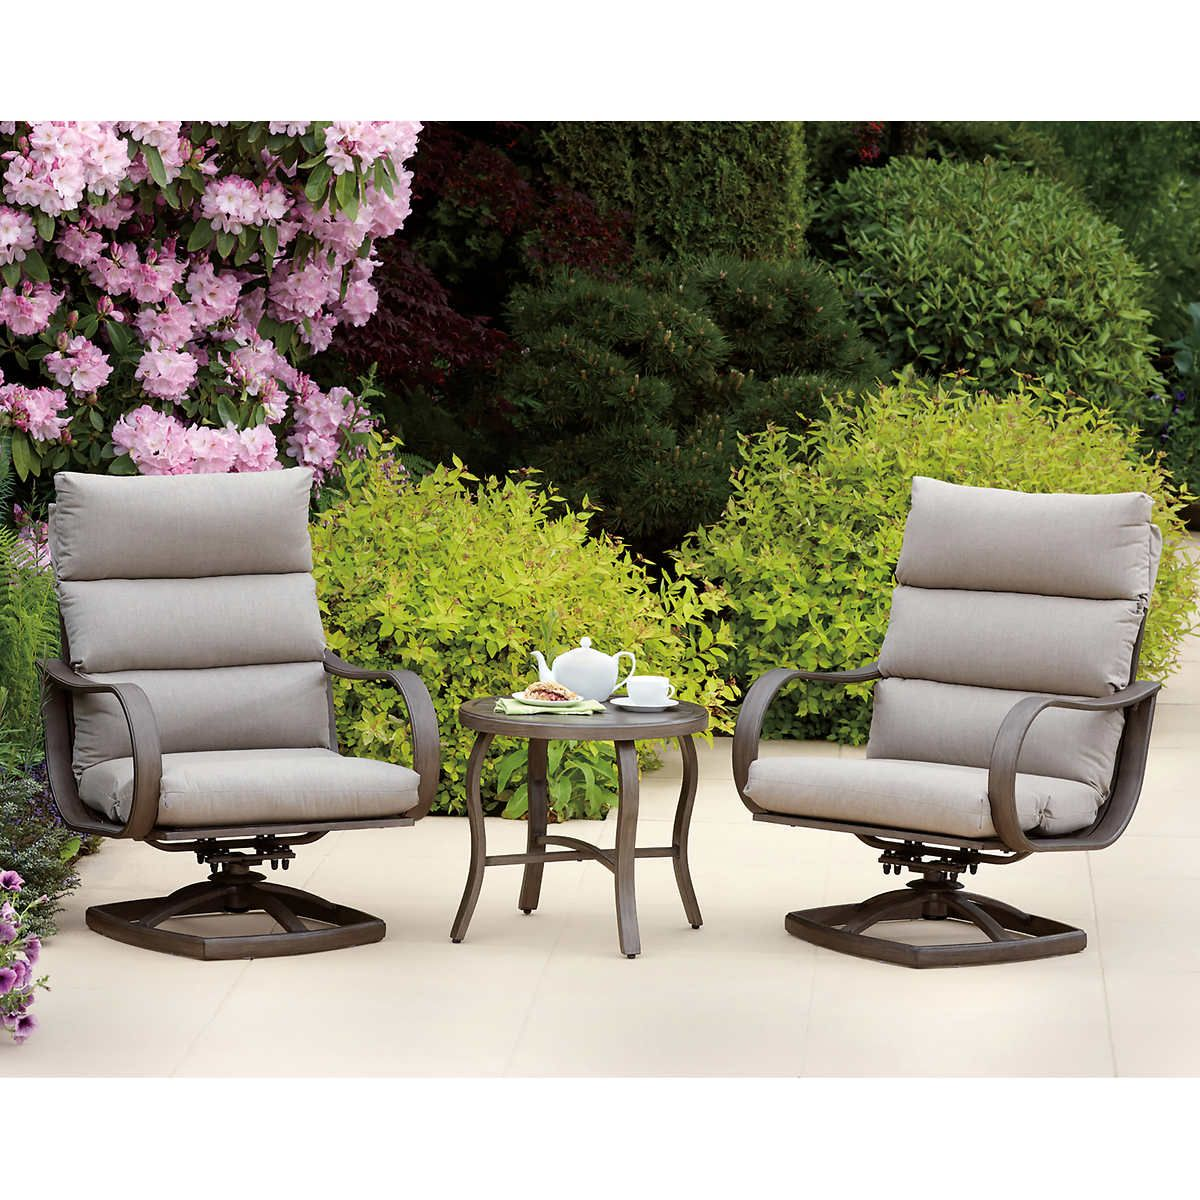 Regency 9-piece Patio Conversation Set  Conversation set patio